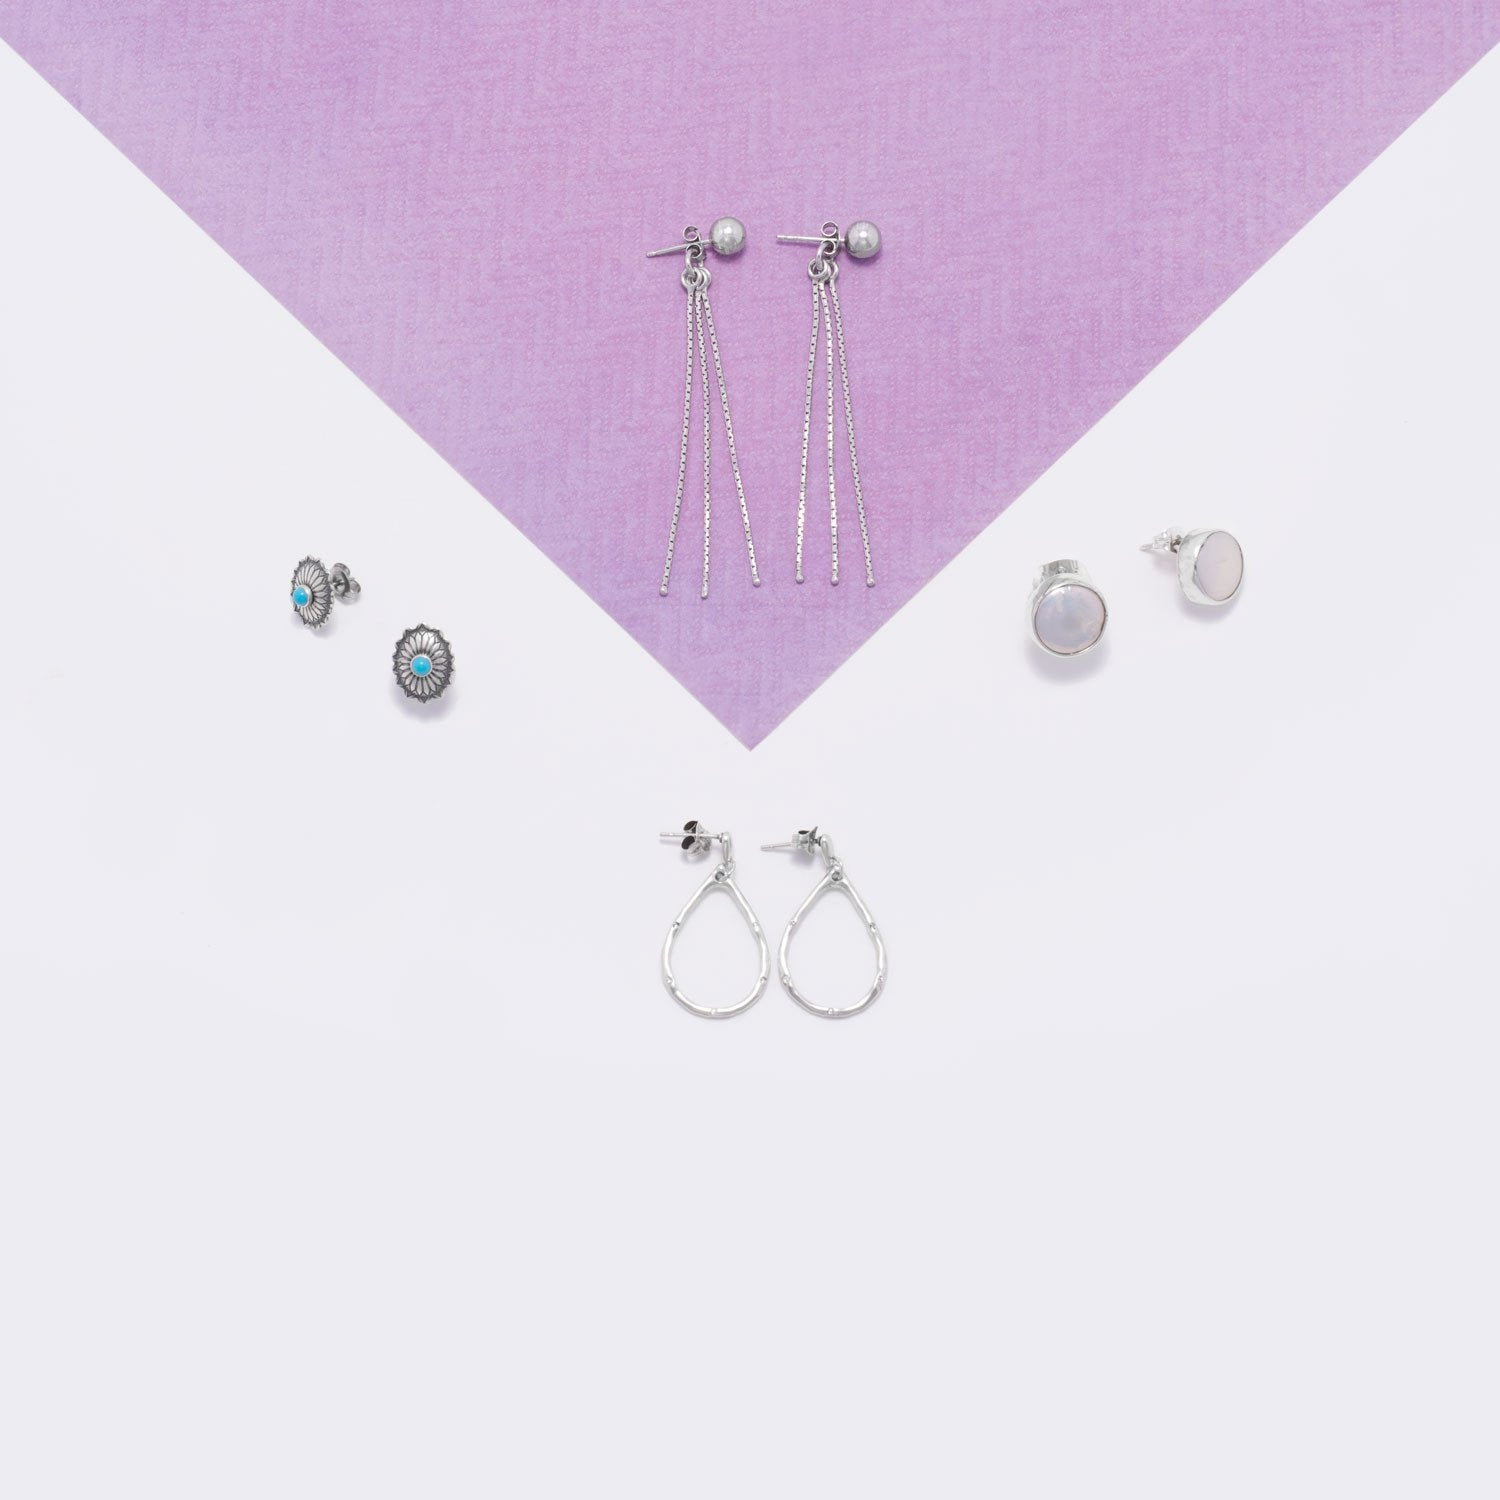 Rhodium Plated Bead Stud Earrings with Hanging Chain Backs